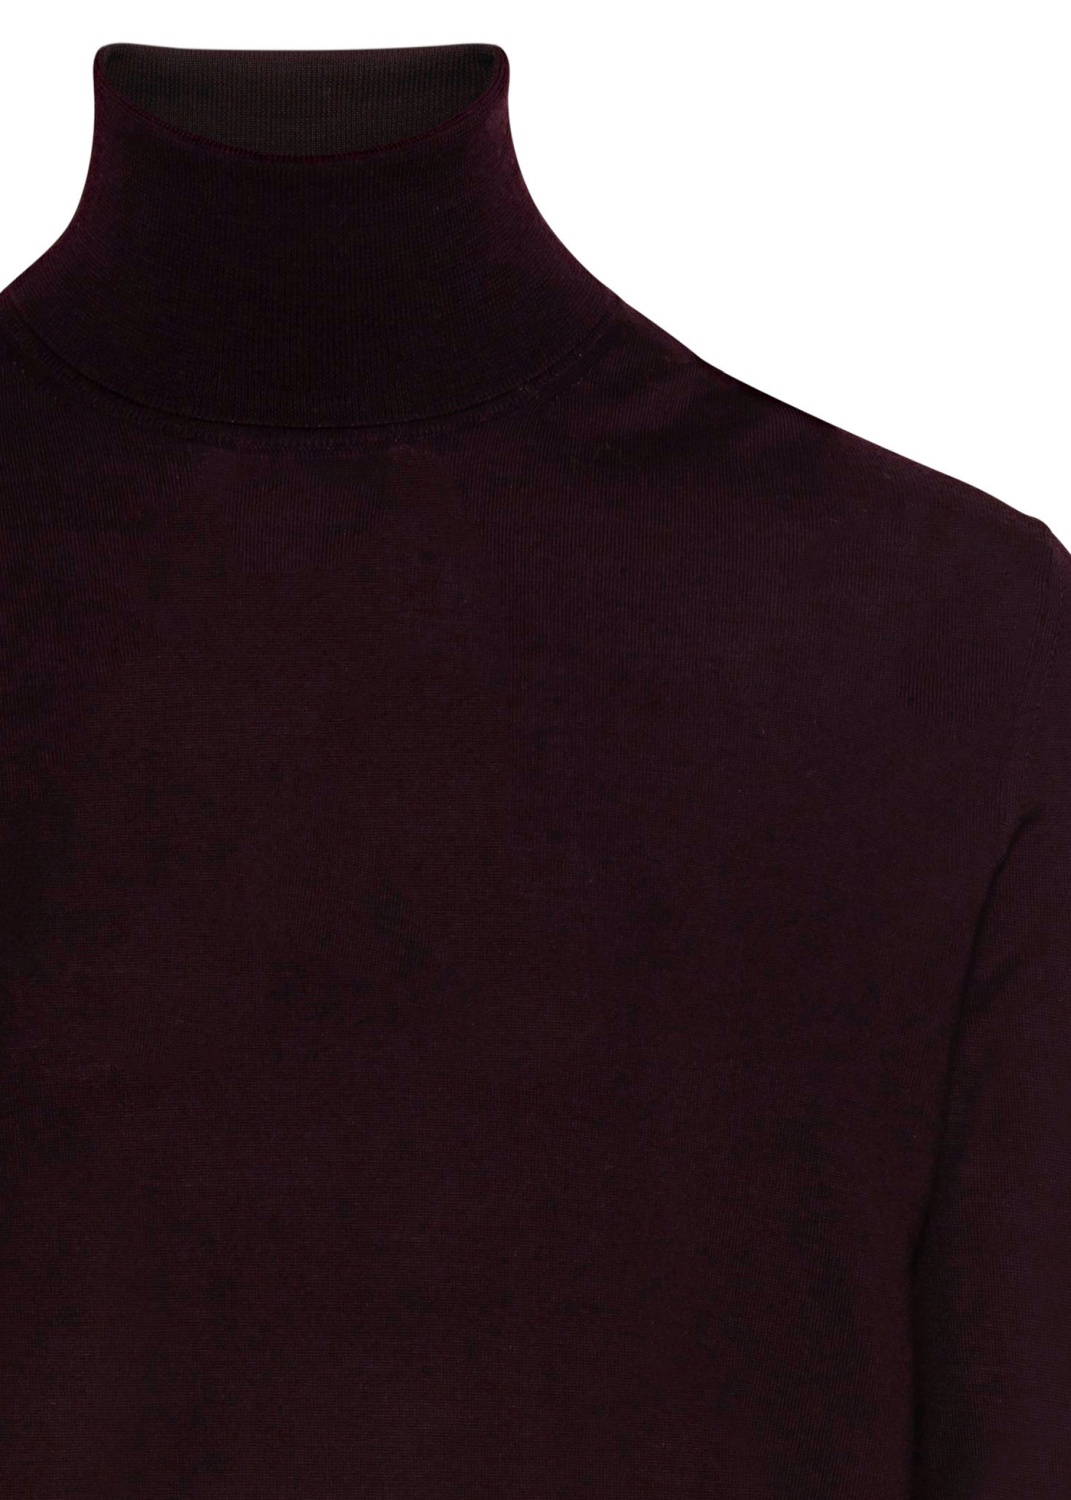 MIGUEL 1700 M.K.SWEATER image number 2